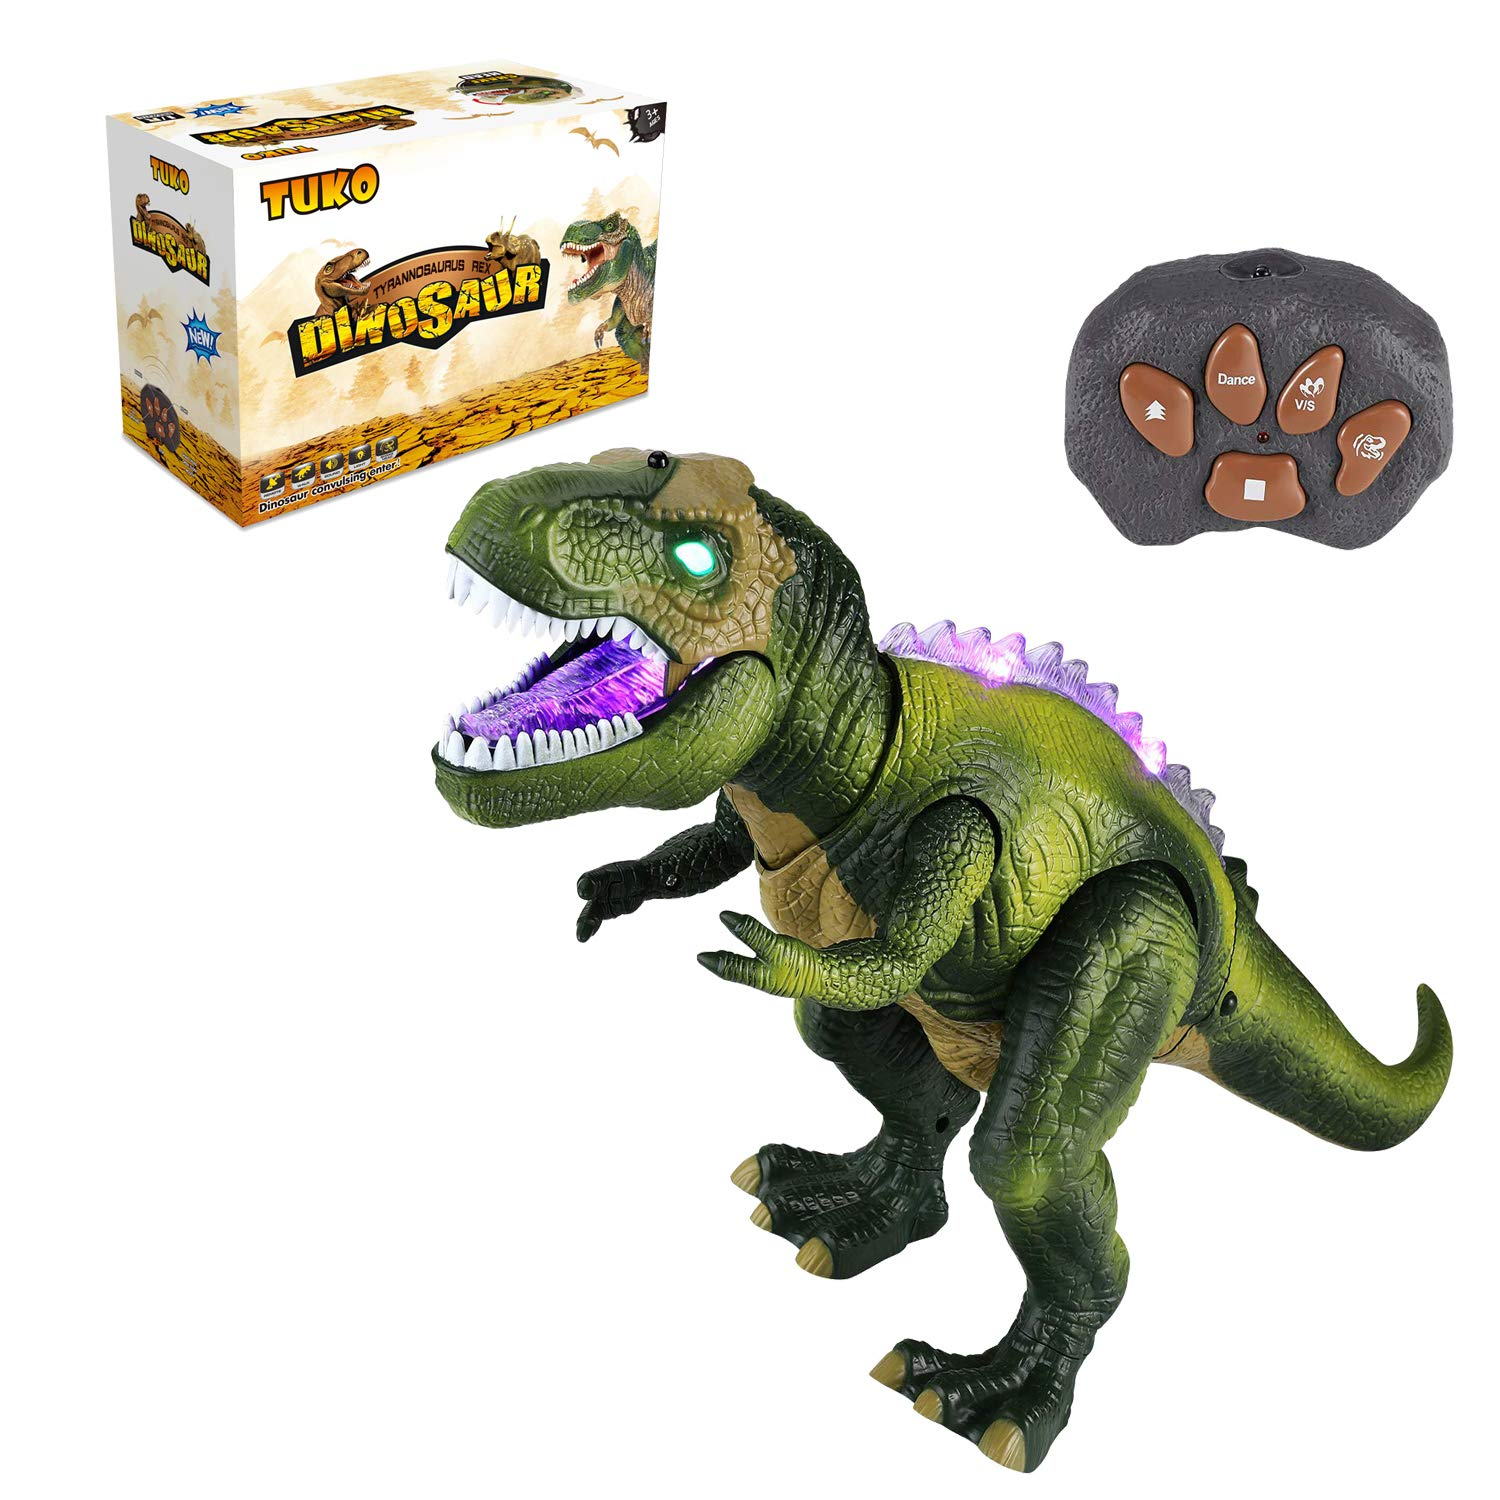 Tuko Light Up Remote Control Dinosaur Toys Jurassic World Walking and Roaring Realistic T-Rex Dinosaur Toys with Glowing Eyes, Walking Movement, Shaking Head for Toddlers Boys Girls by Tuko (Image #1)